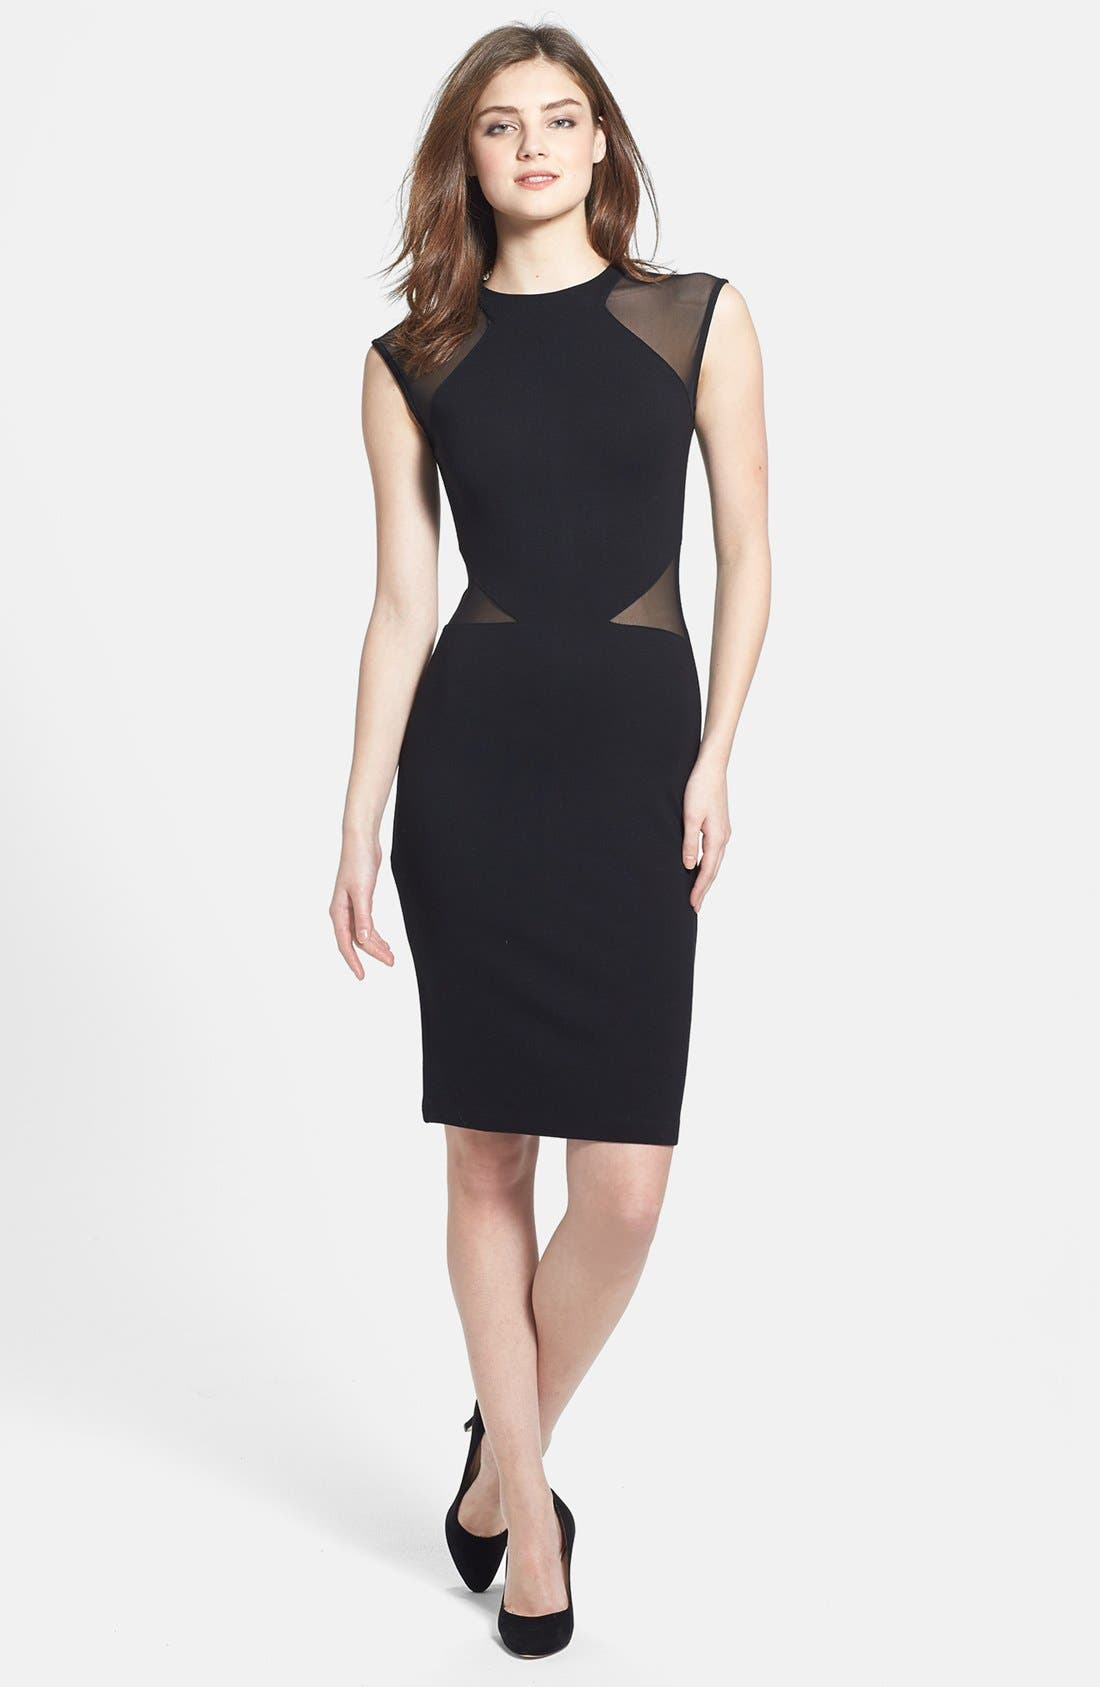 French Connection 'Viven' Mesh Inset Body-Con Dress